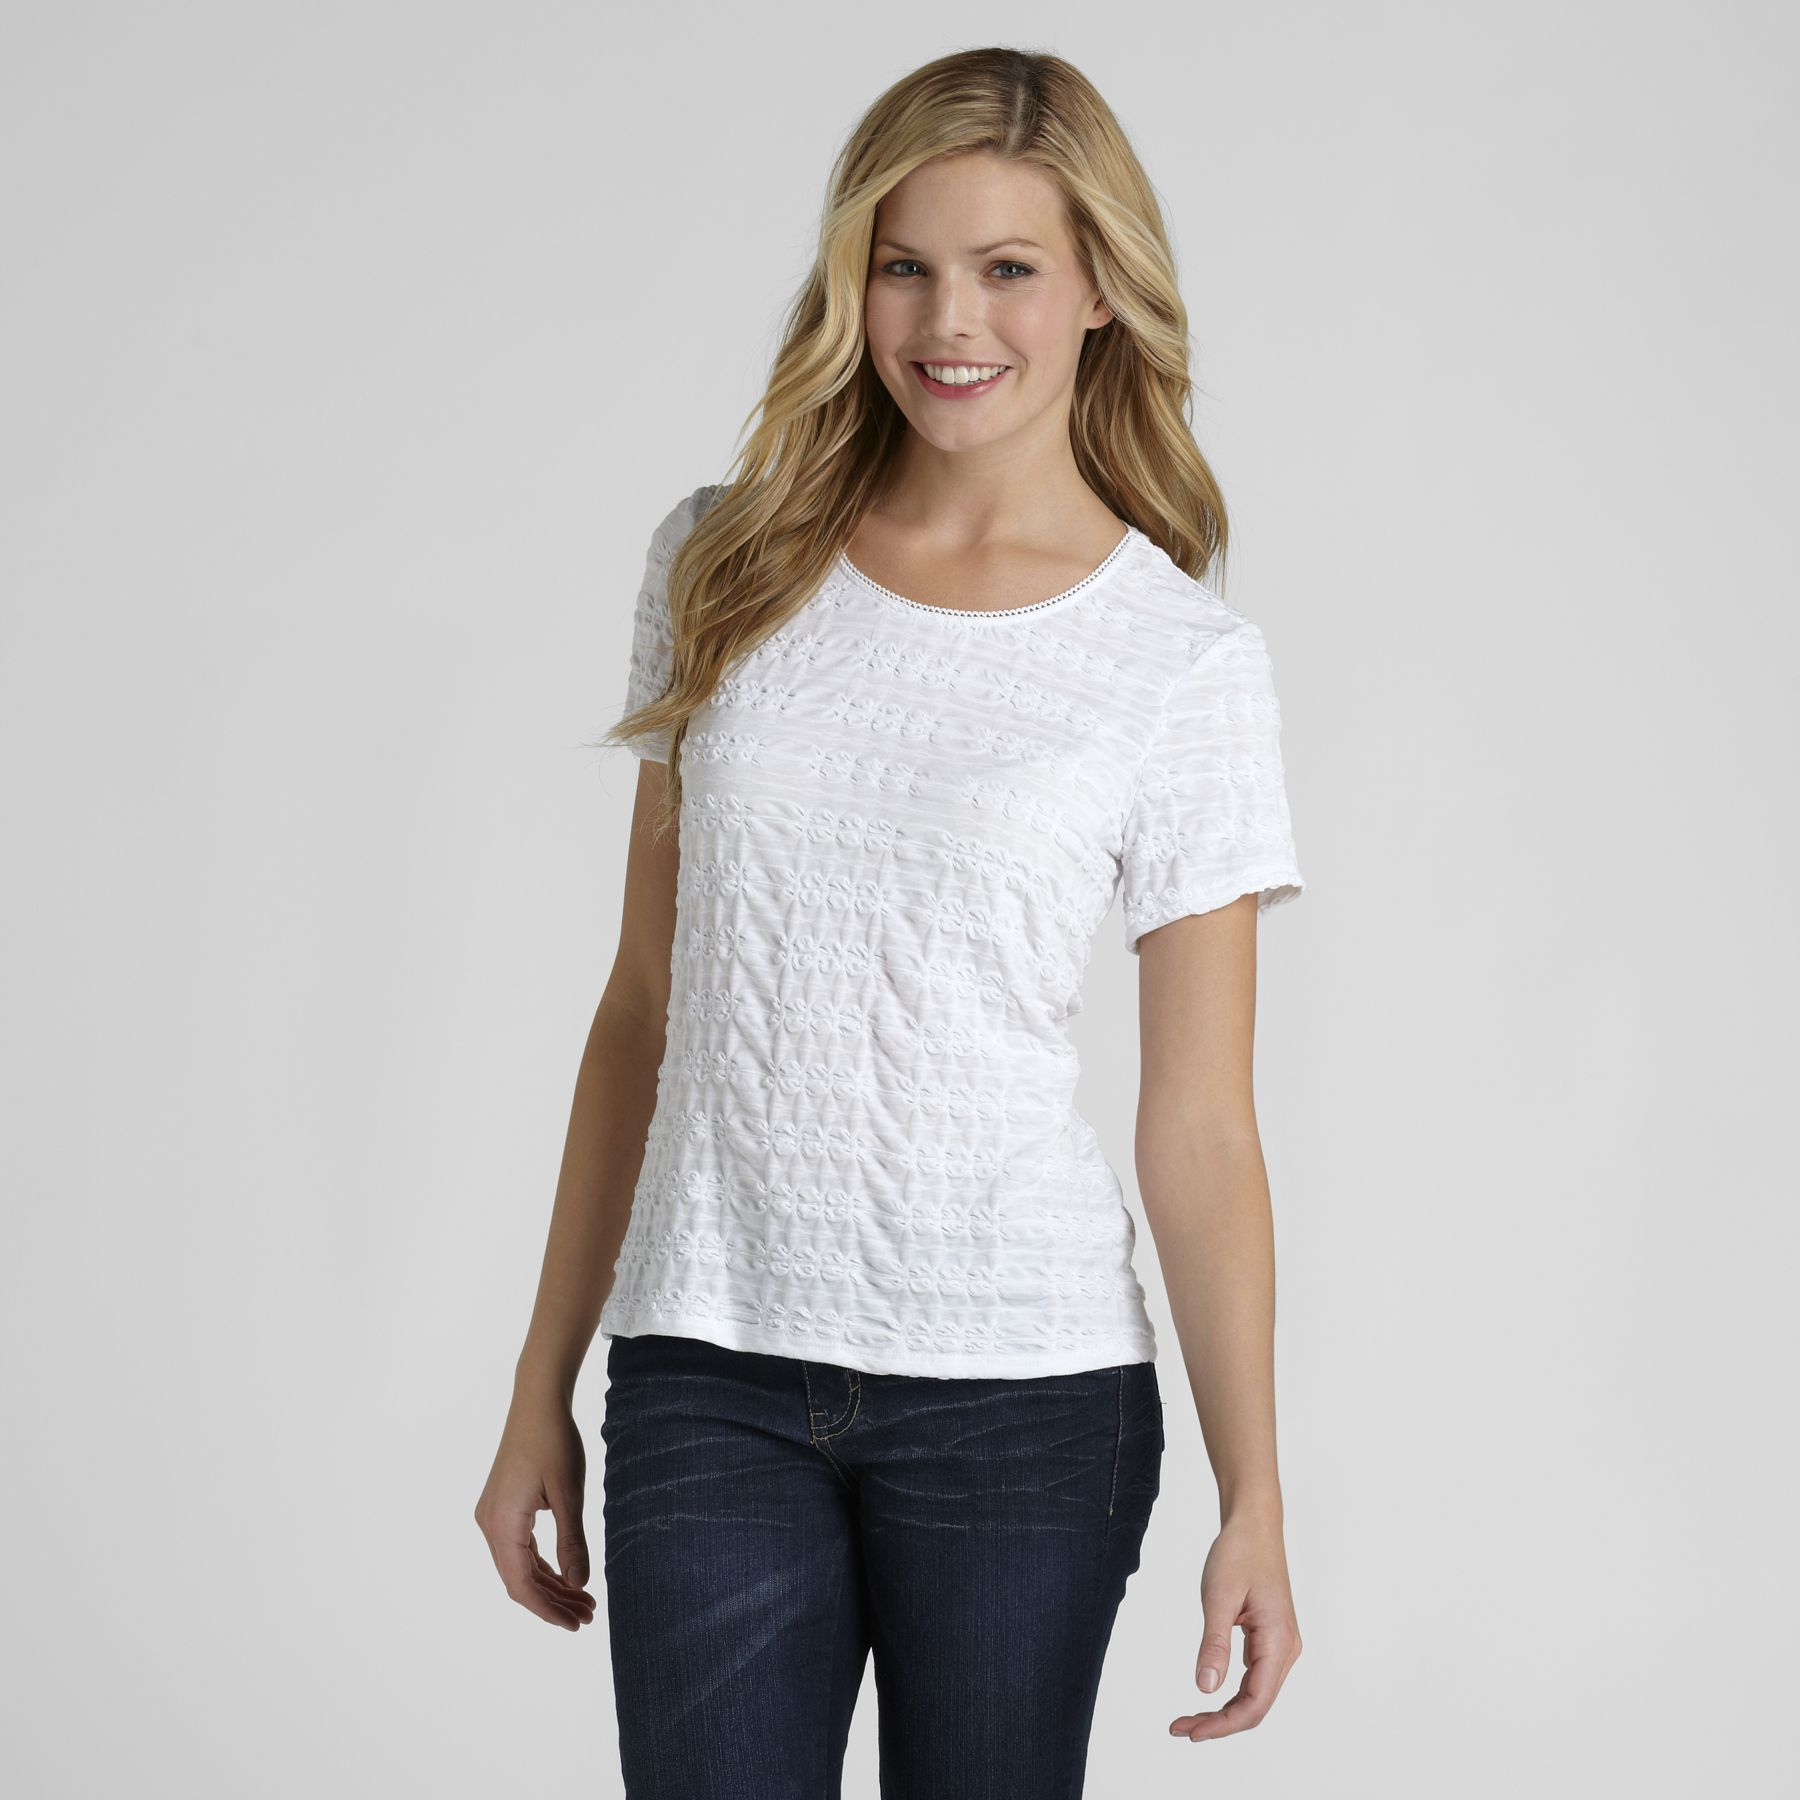 Laura Scott Women's Pucker T-Shirt at Sears.com